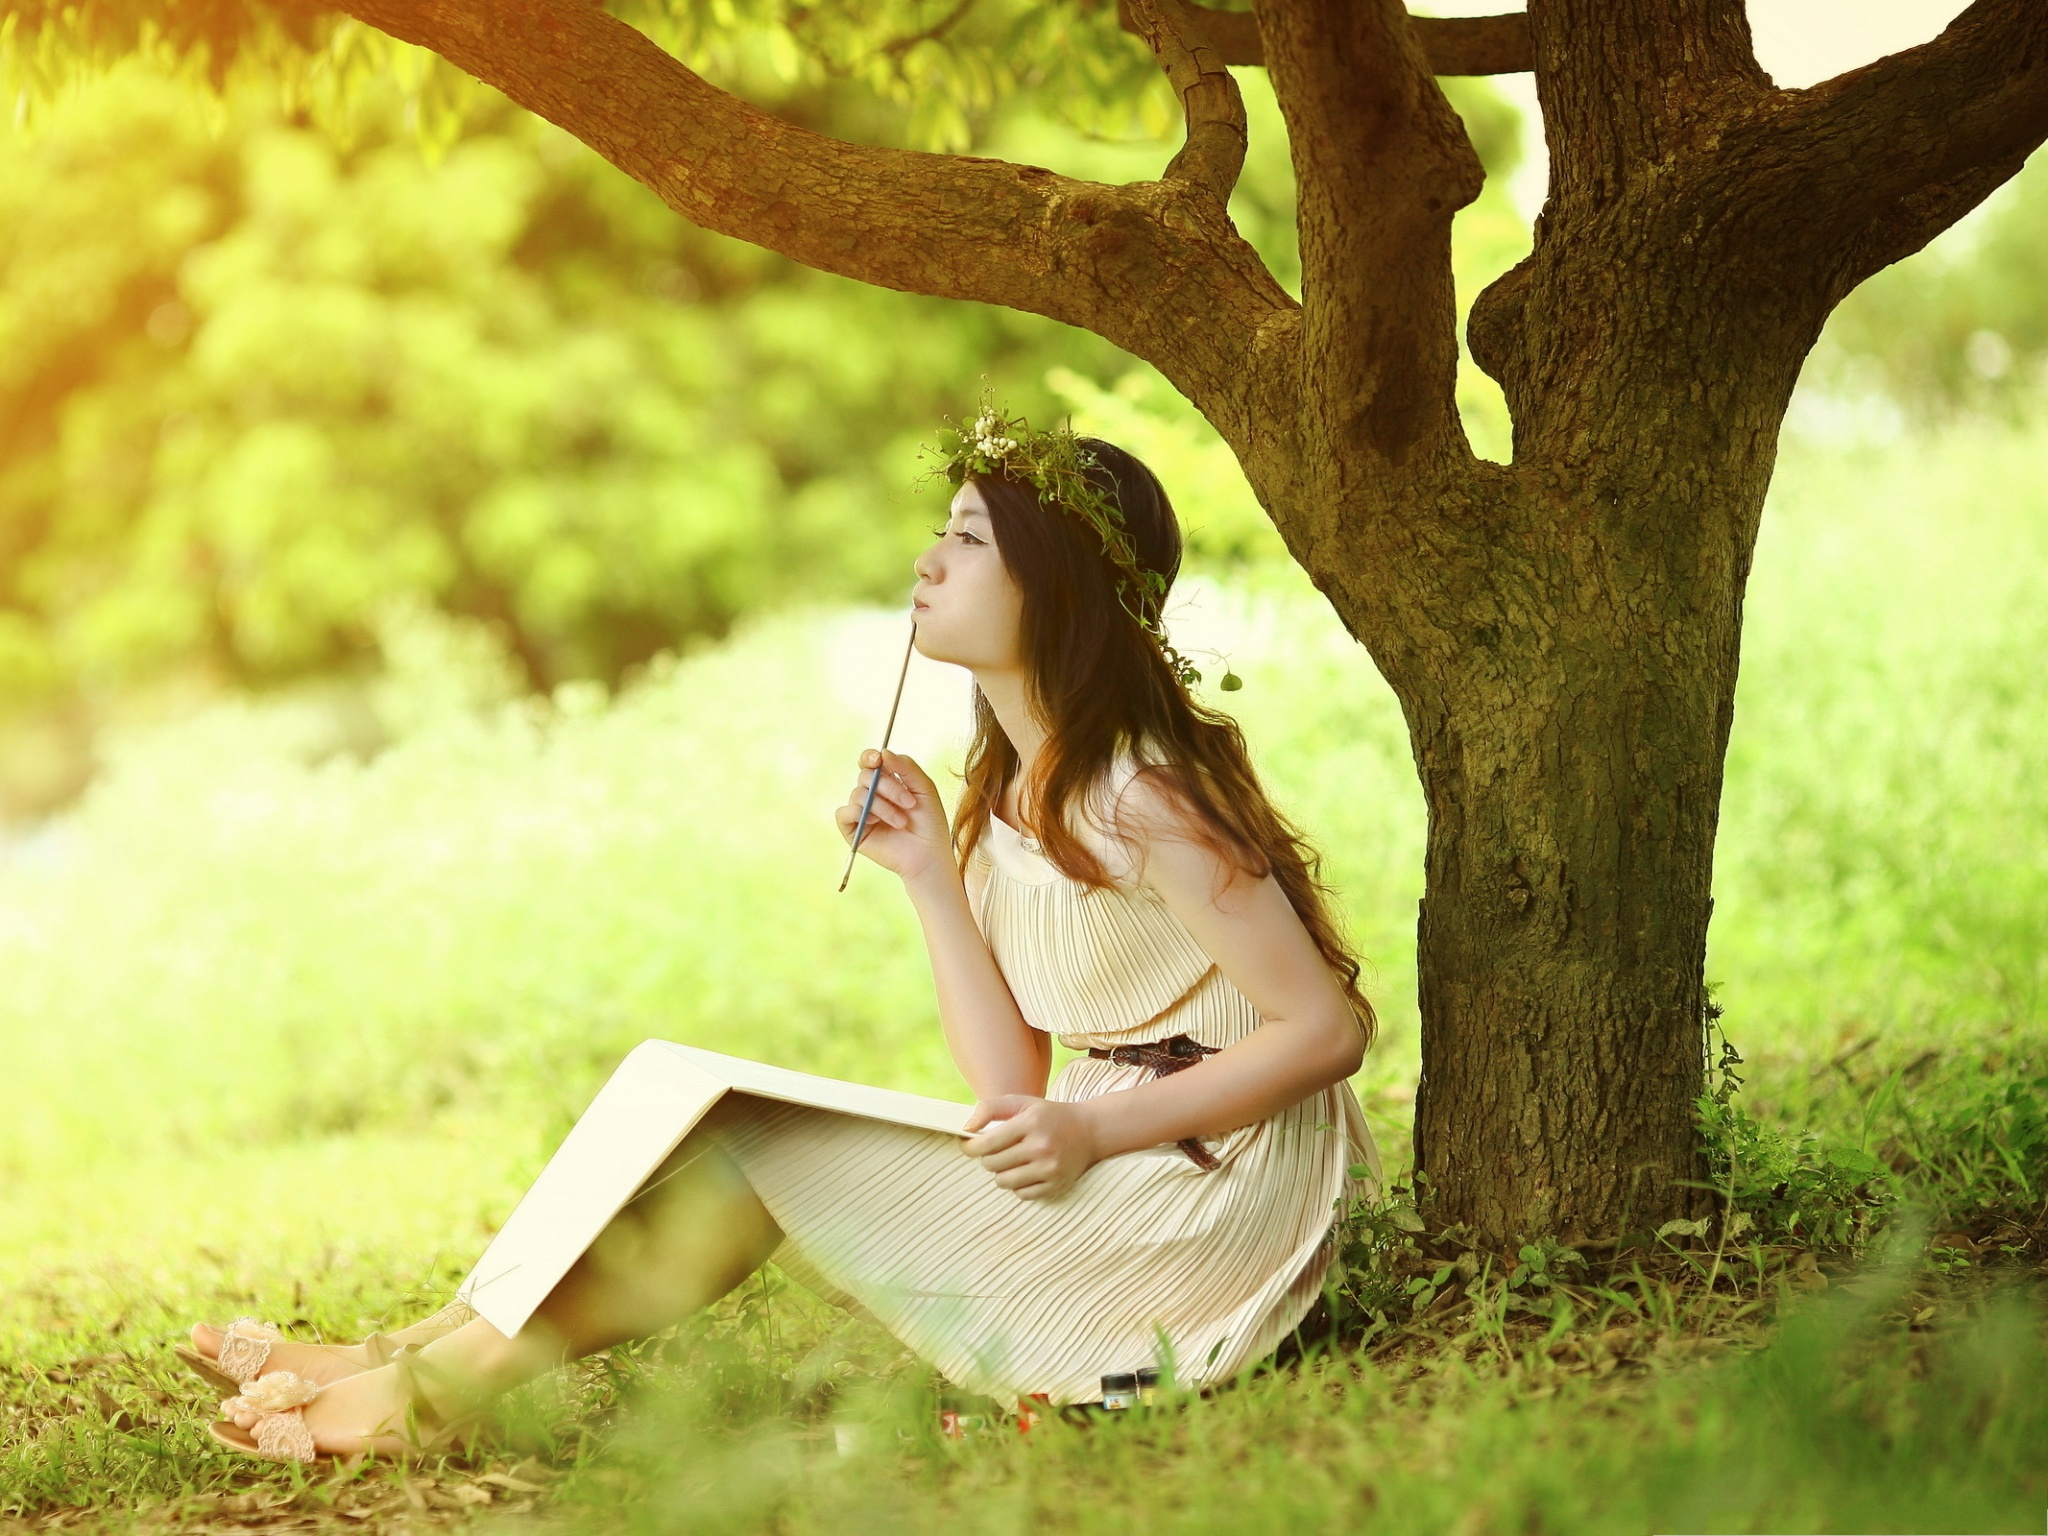 Cute Girl Pictures Beautiful Girl Outdoor Light Colored